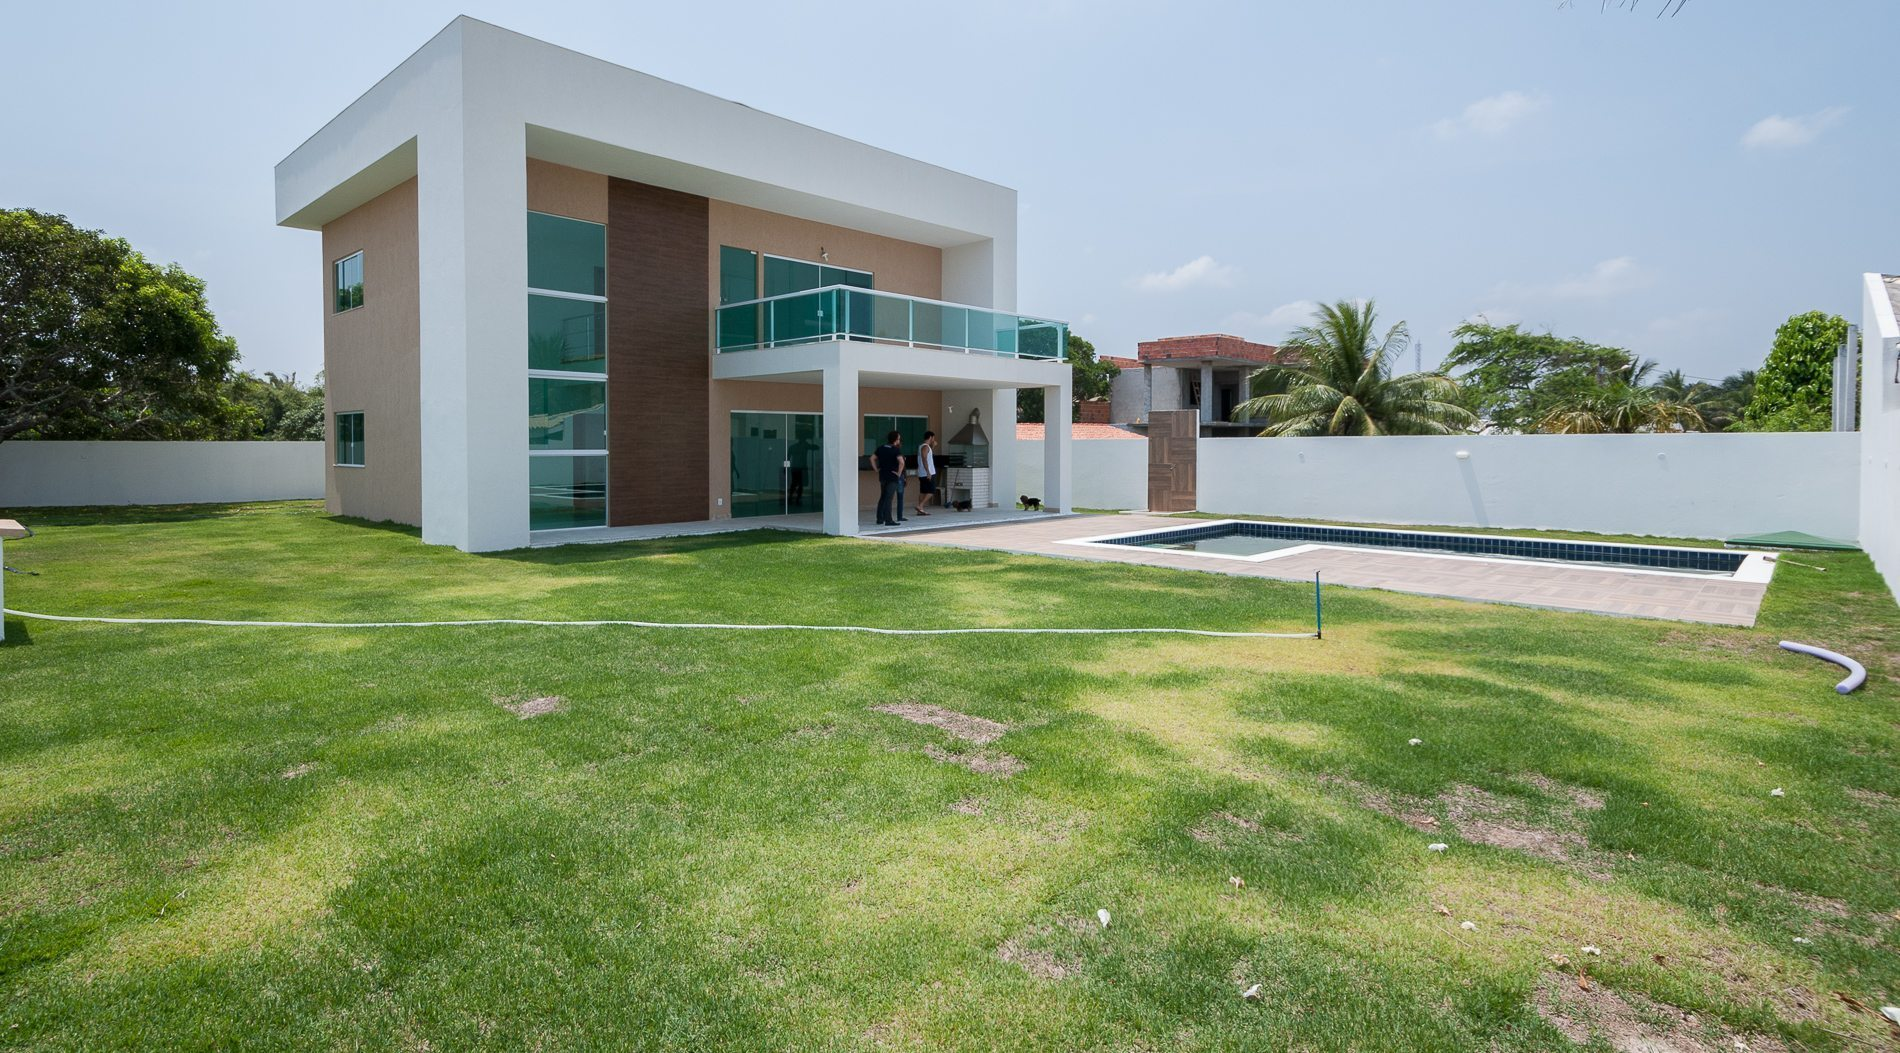 Home for sale in Barra do Jacuípe